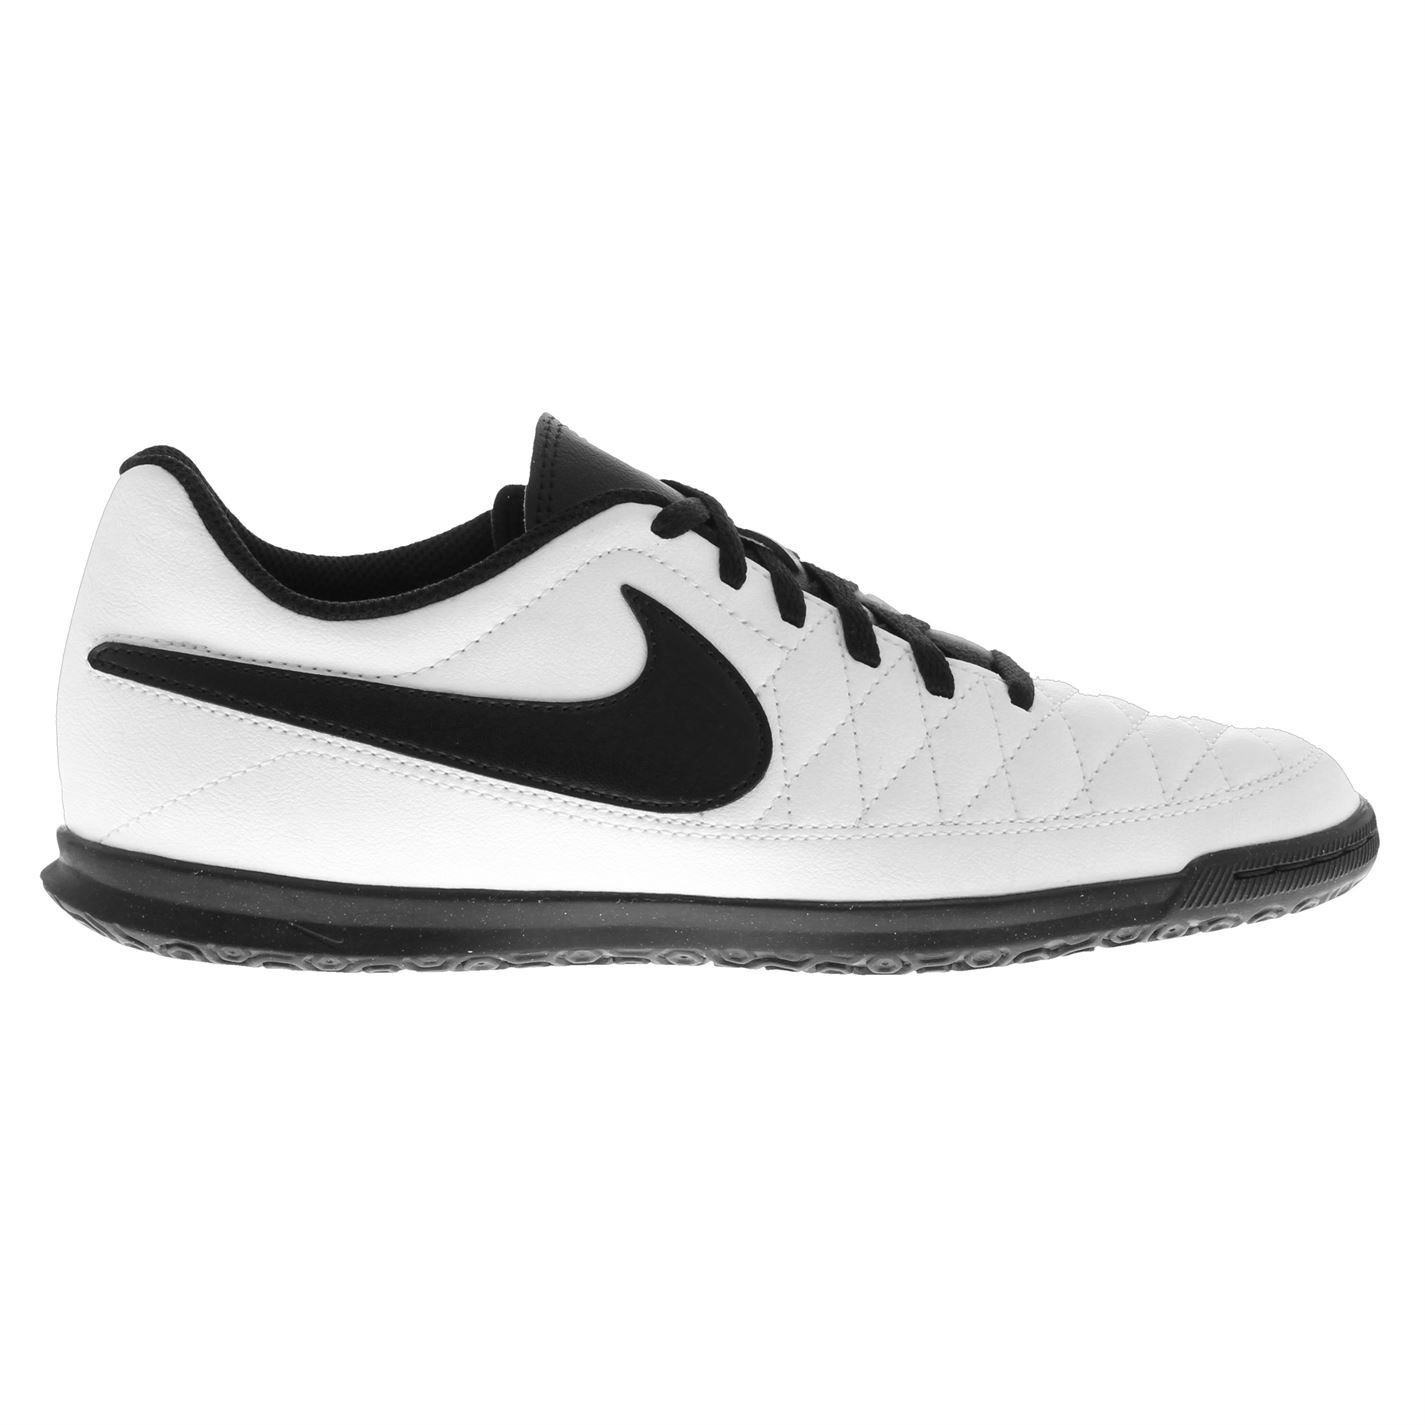 Nike-majestry-Indoor-Football-Baskets-Pour-Homme-Football-Futsal-Chaussures-Baskets-Bottes miniature 33